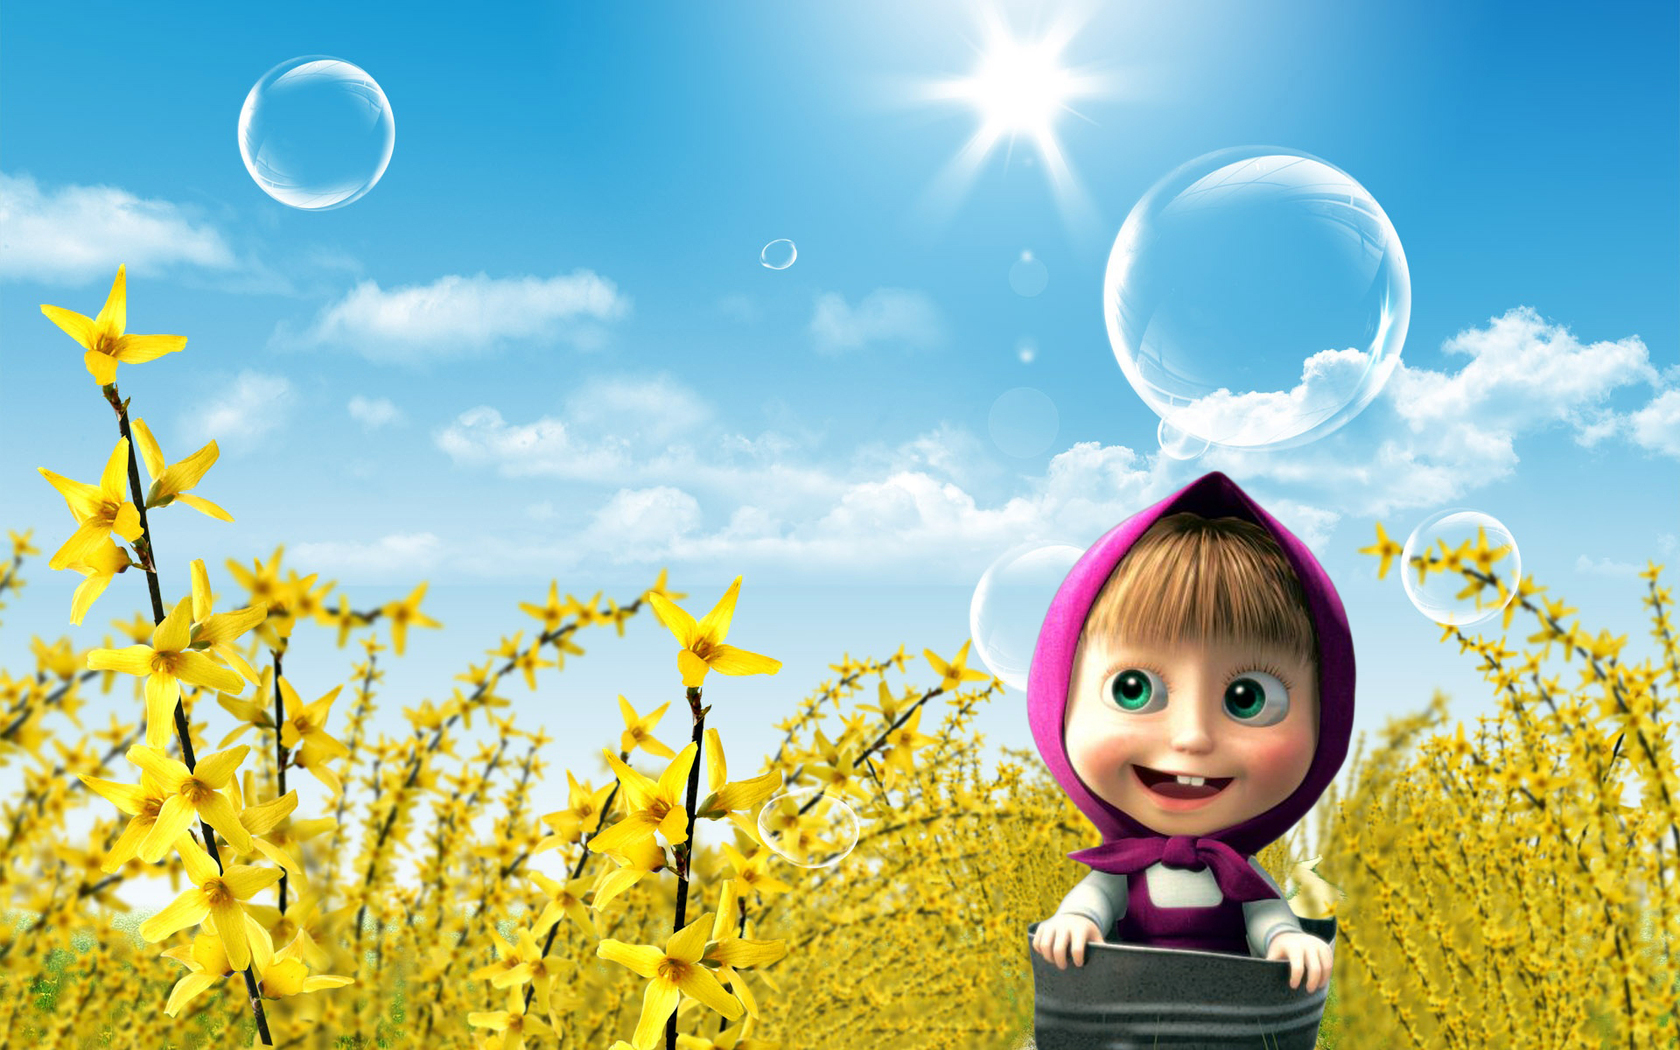 Animated Wallpapers Animated Baby Girl Wallpaper